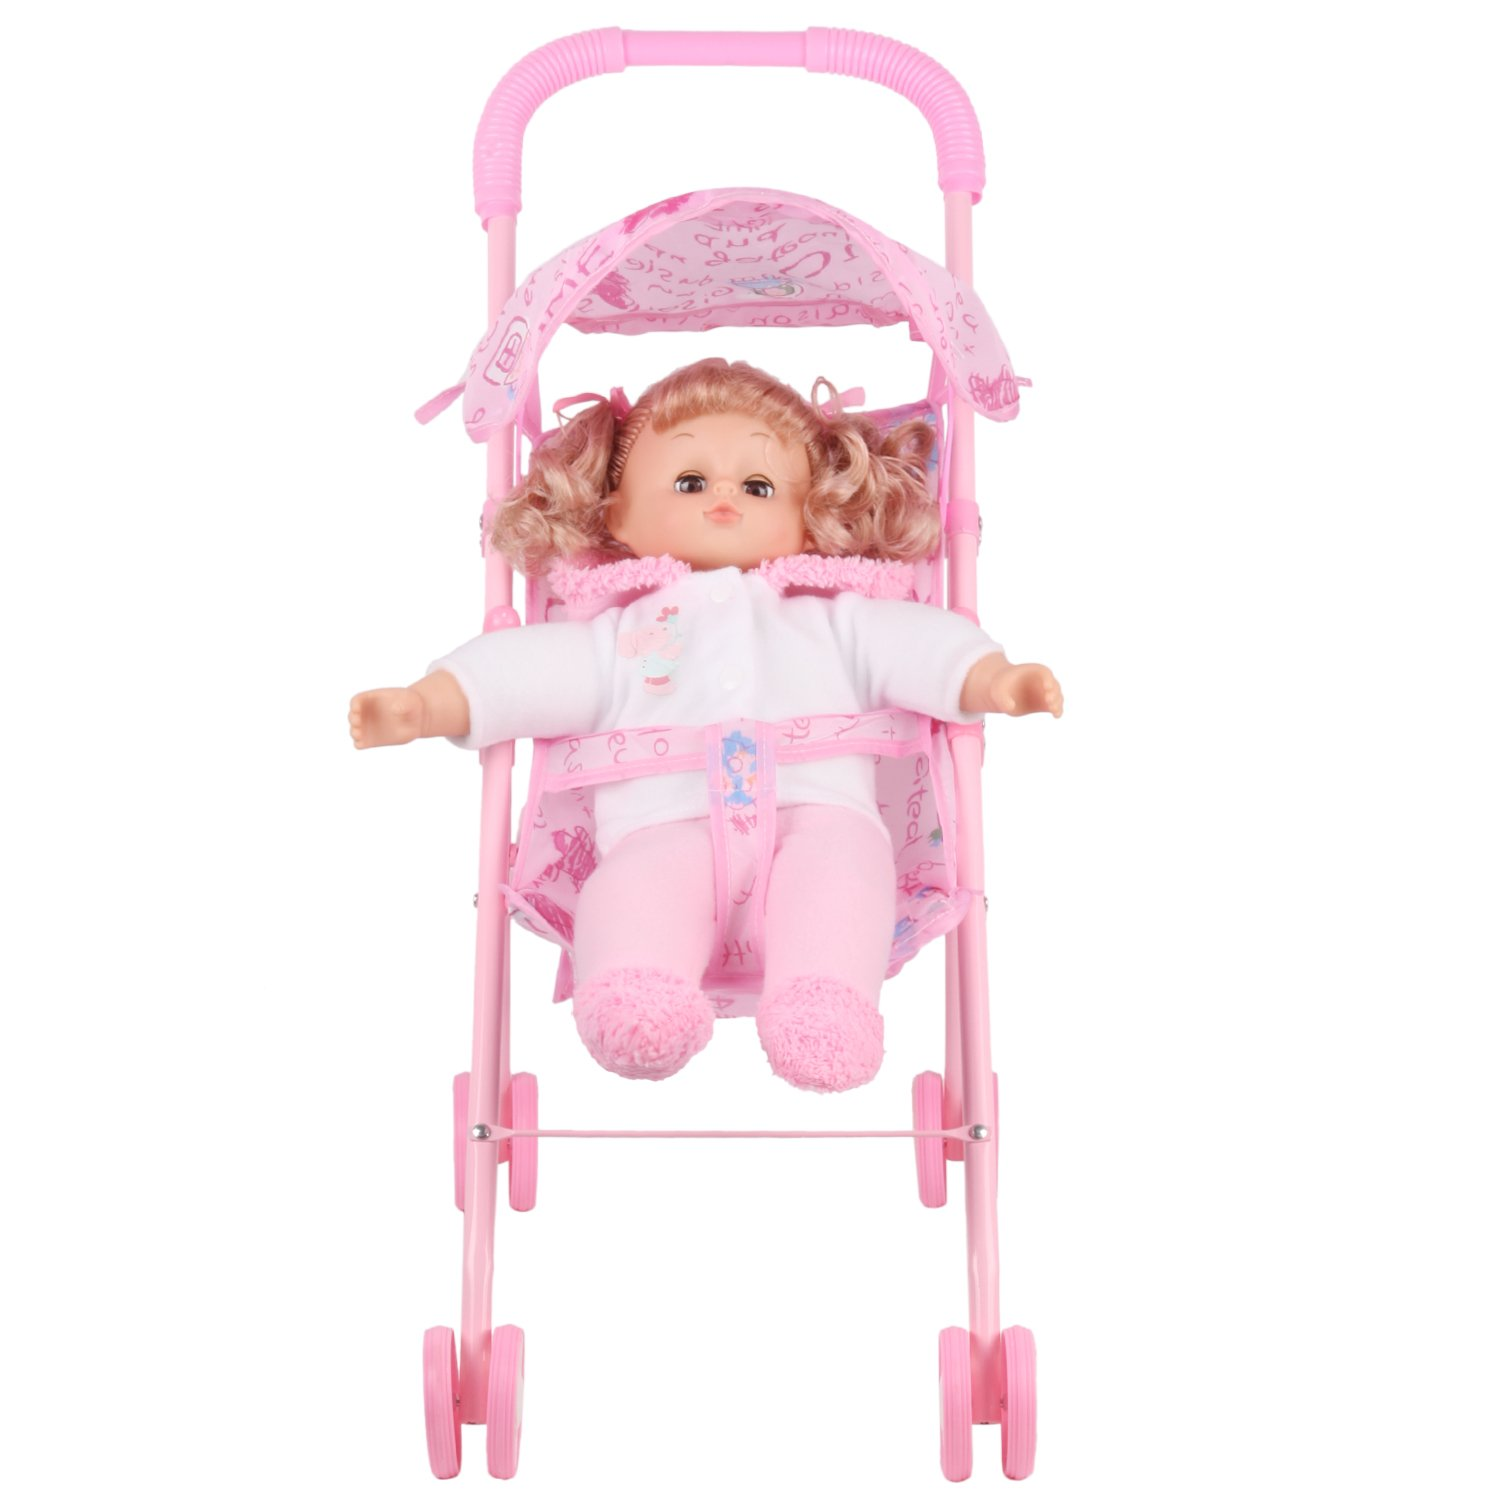 Irony Pink Doll Stroller Baby Carriage Foldable with 4 Wheels with Hood by Huang Cheng Toys (Image #1)